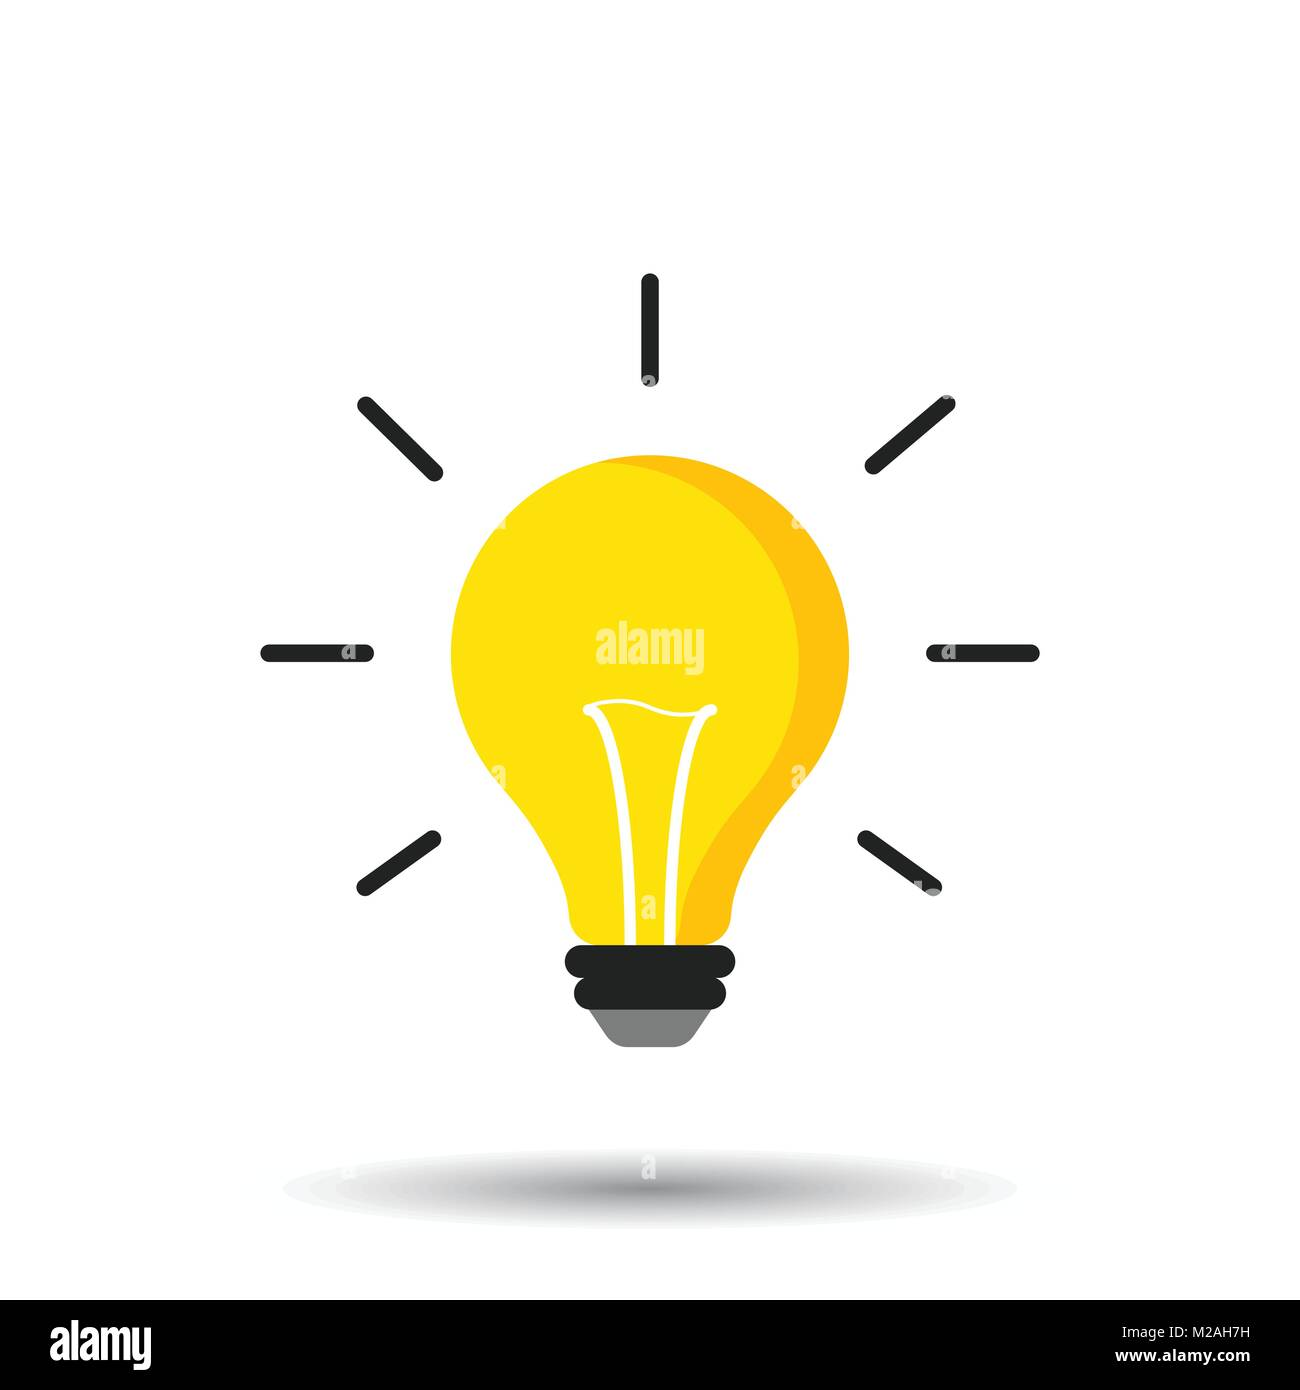 Halogen lightbulb icon. Light bulb sign. Electricity and idea symbol ...